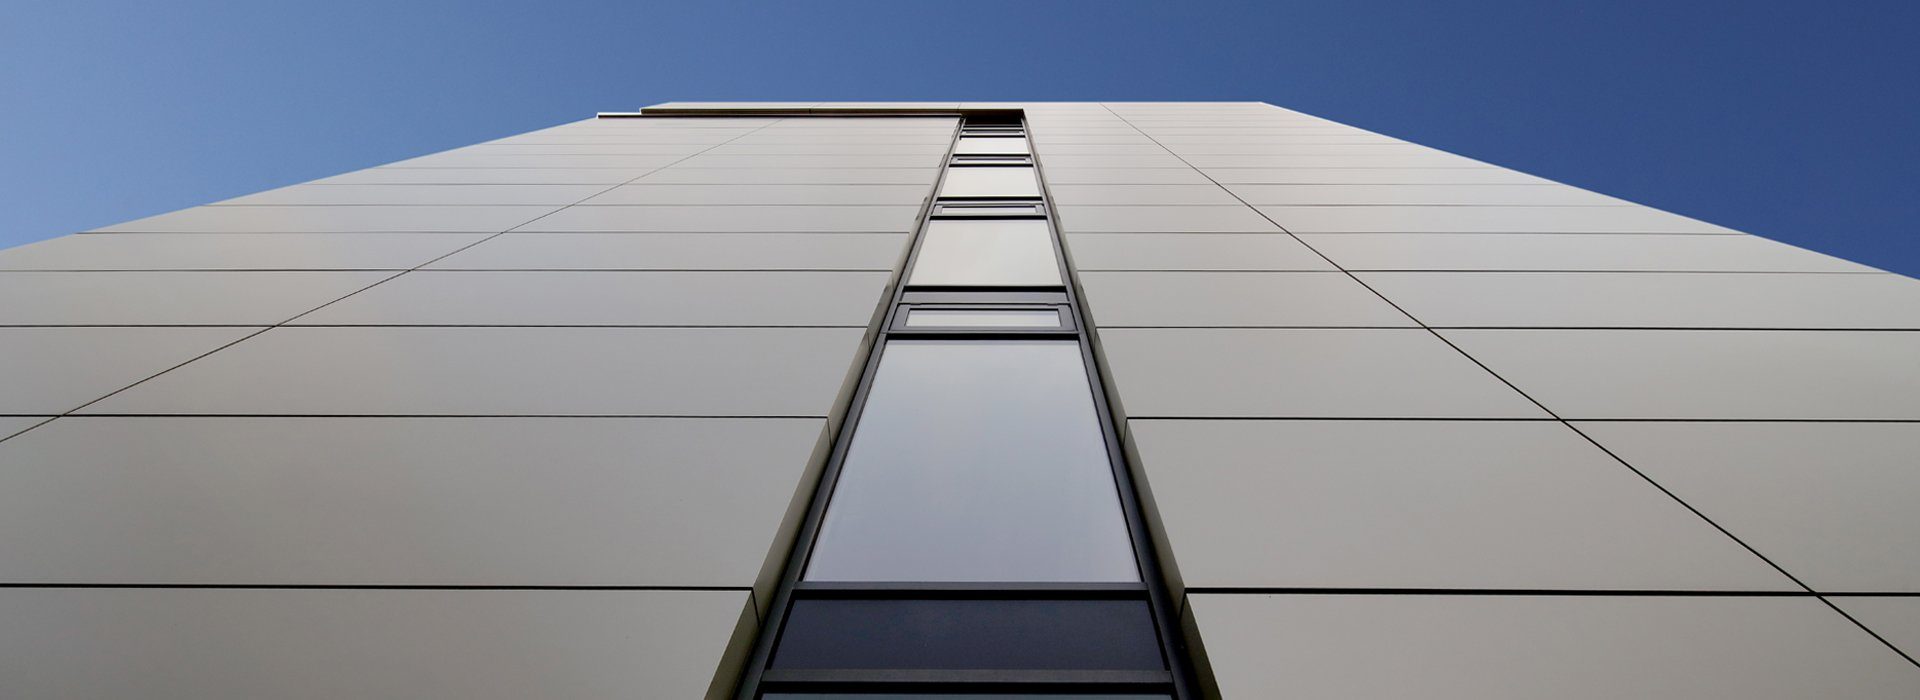 rainscreen-cladding-aluminium-fascia-facade-panels